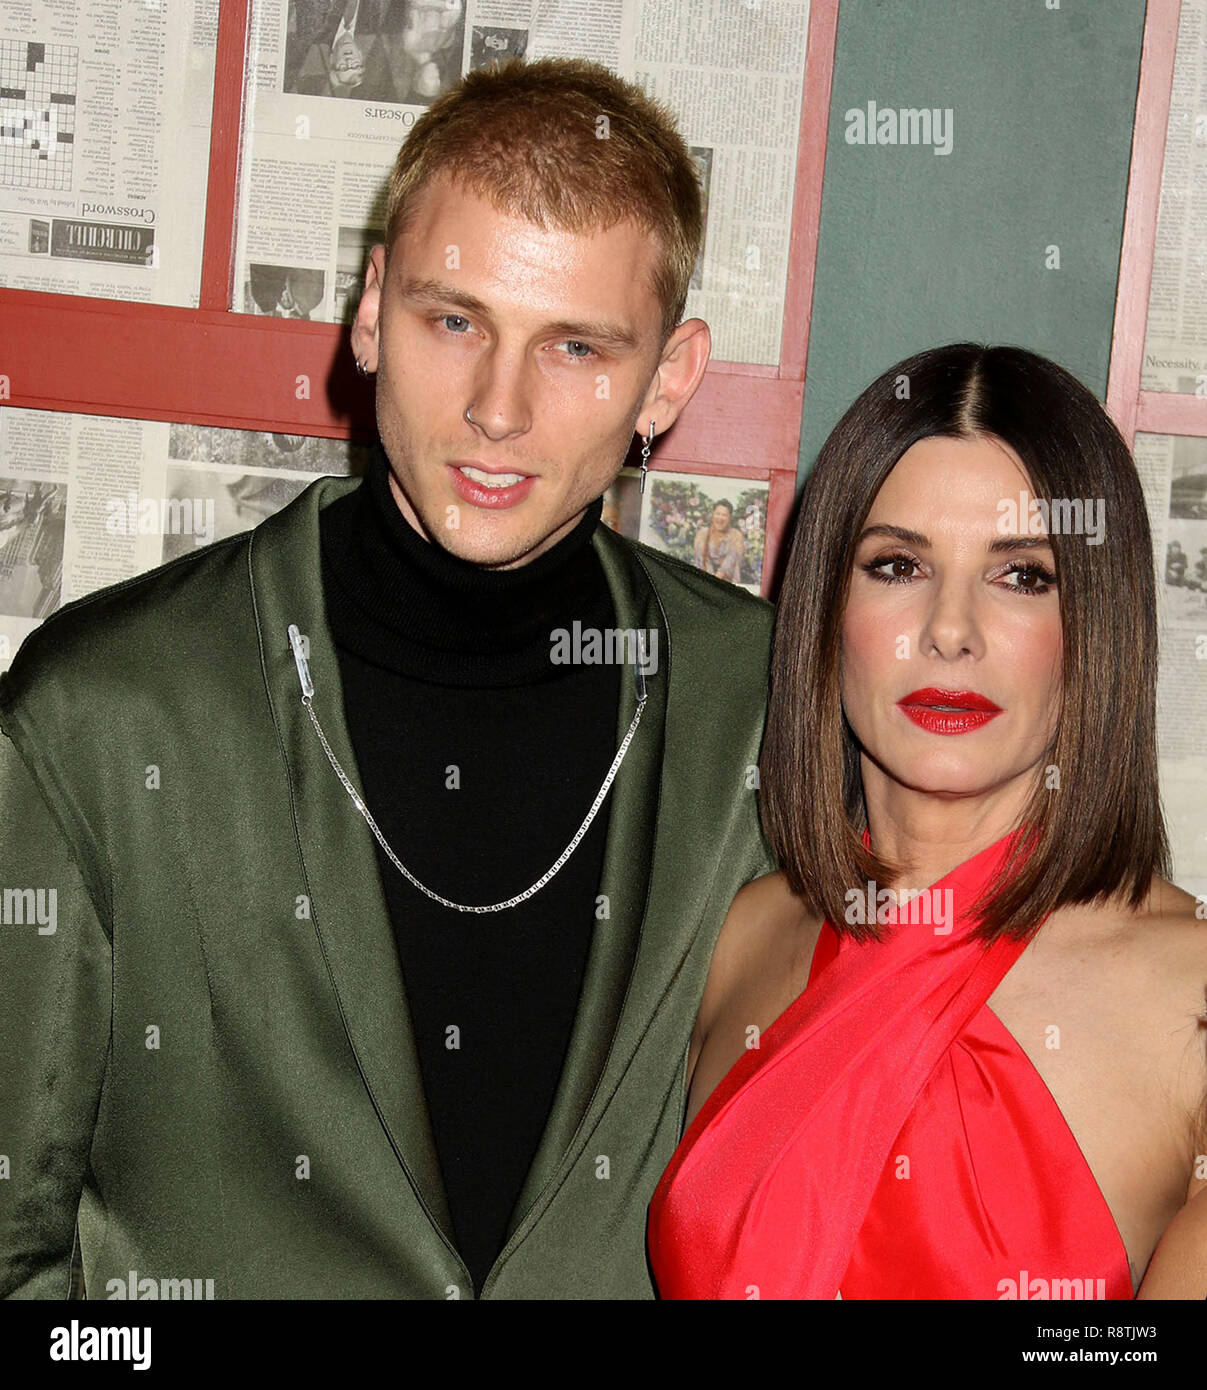 New York City, New York, USA. 17th Dec, 2018. Actor COLSON BAKER aka MACHINE GUN KELLY and actress SANDRA BULLOCK attend the New York Special Screening of 'Bird Box' held at Alice Tully Hall at Lincoln Center. Credit: Nancy Kaszerman/ZUMA Wire/Alamy Live News Stock Photo